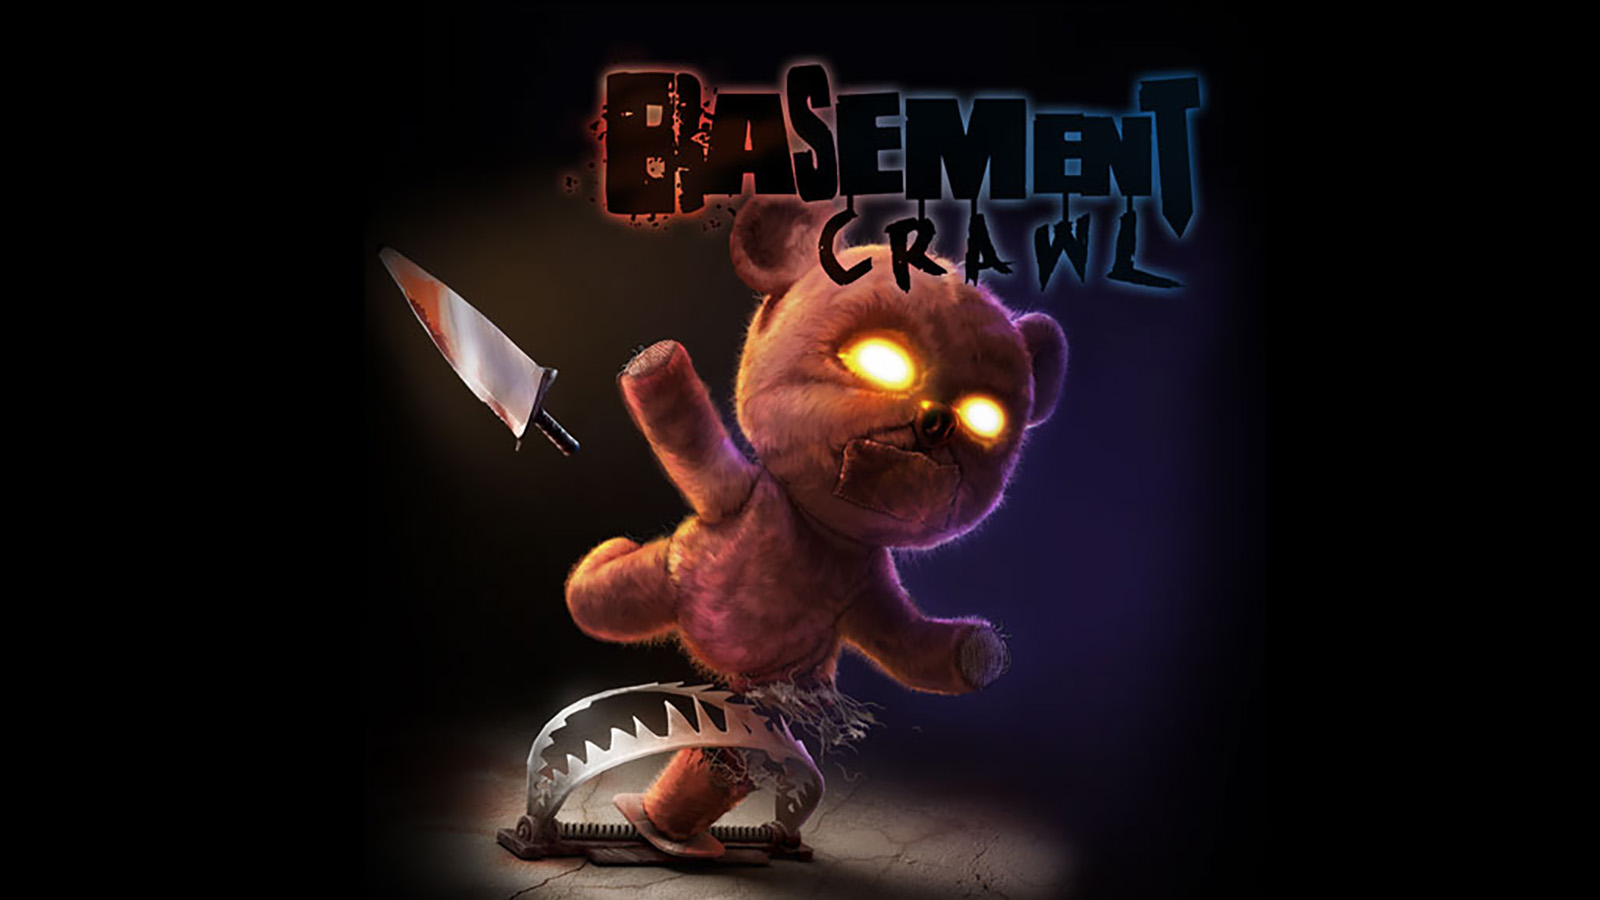 Basement crawl game ps4 playstation for Crawl basement